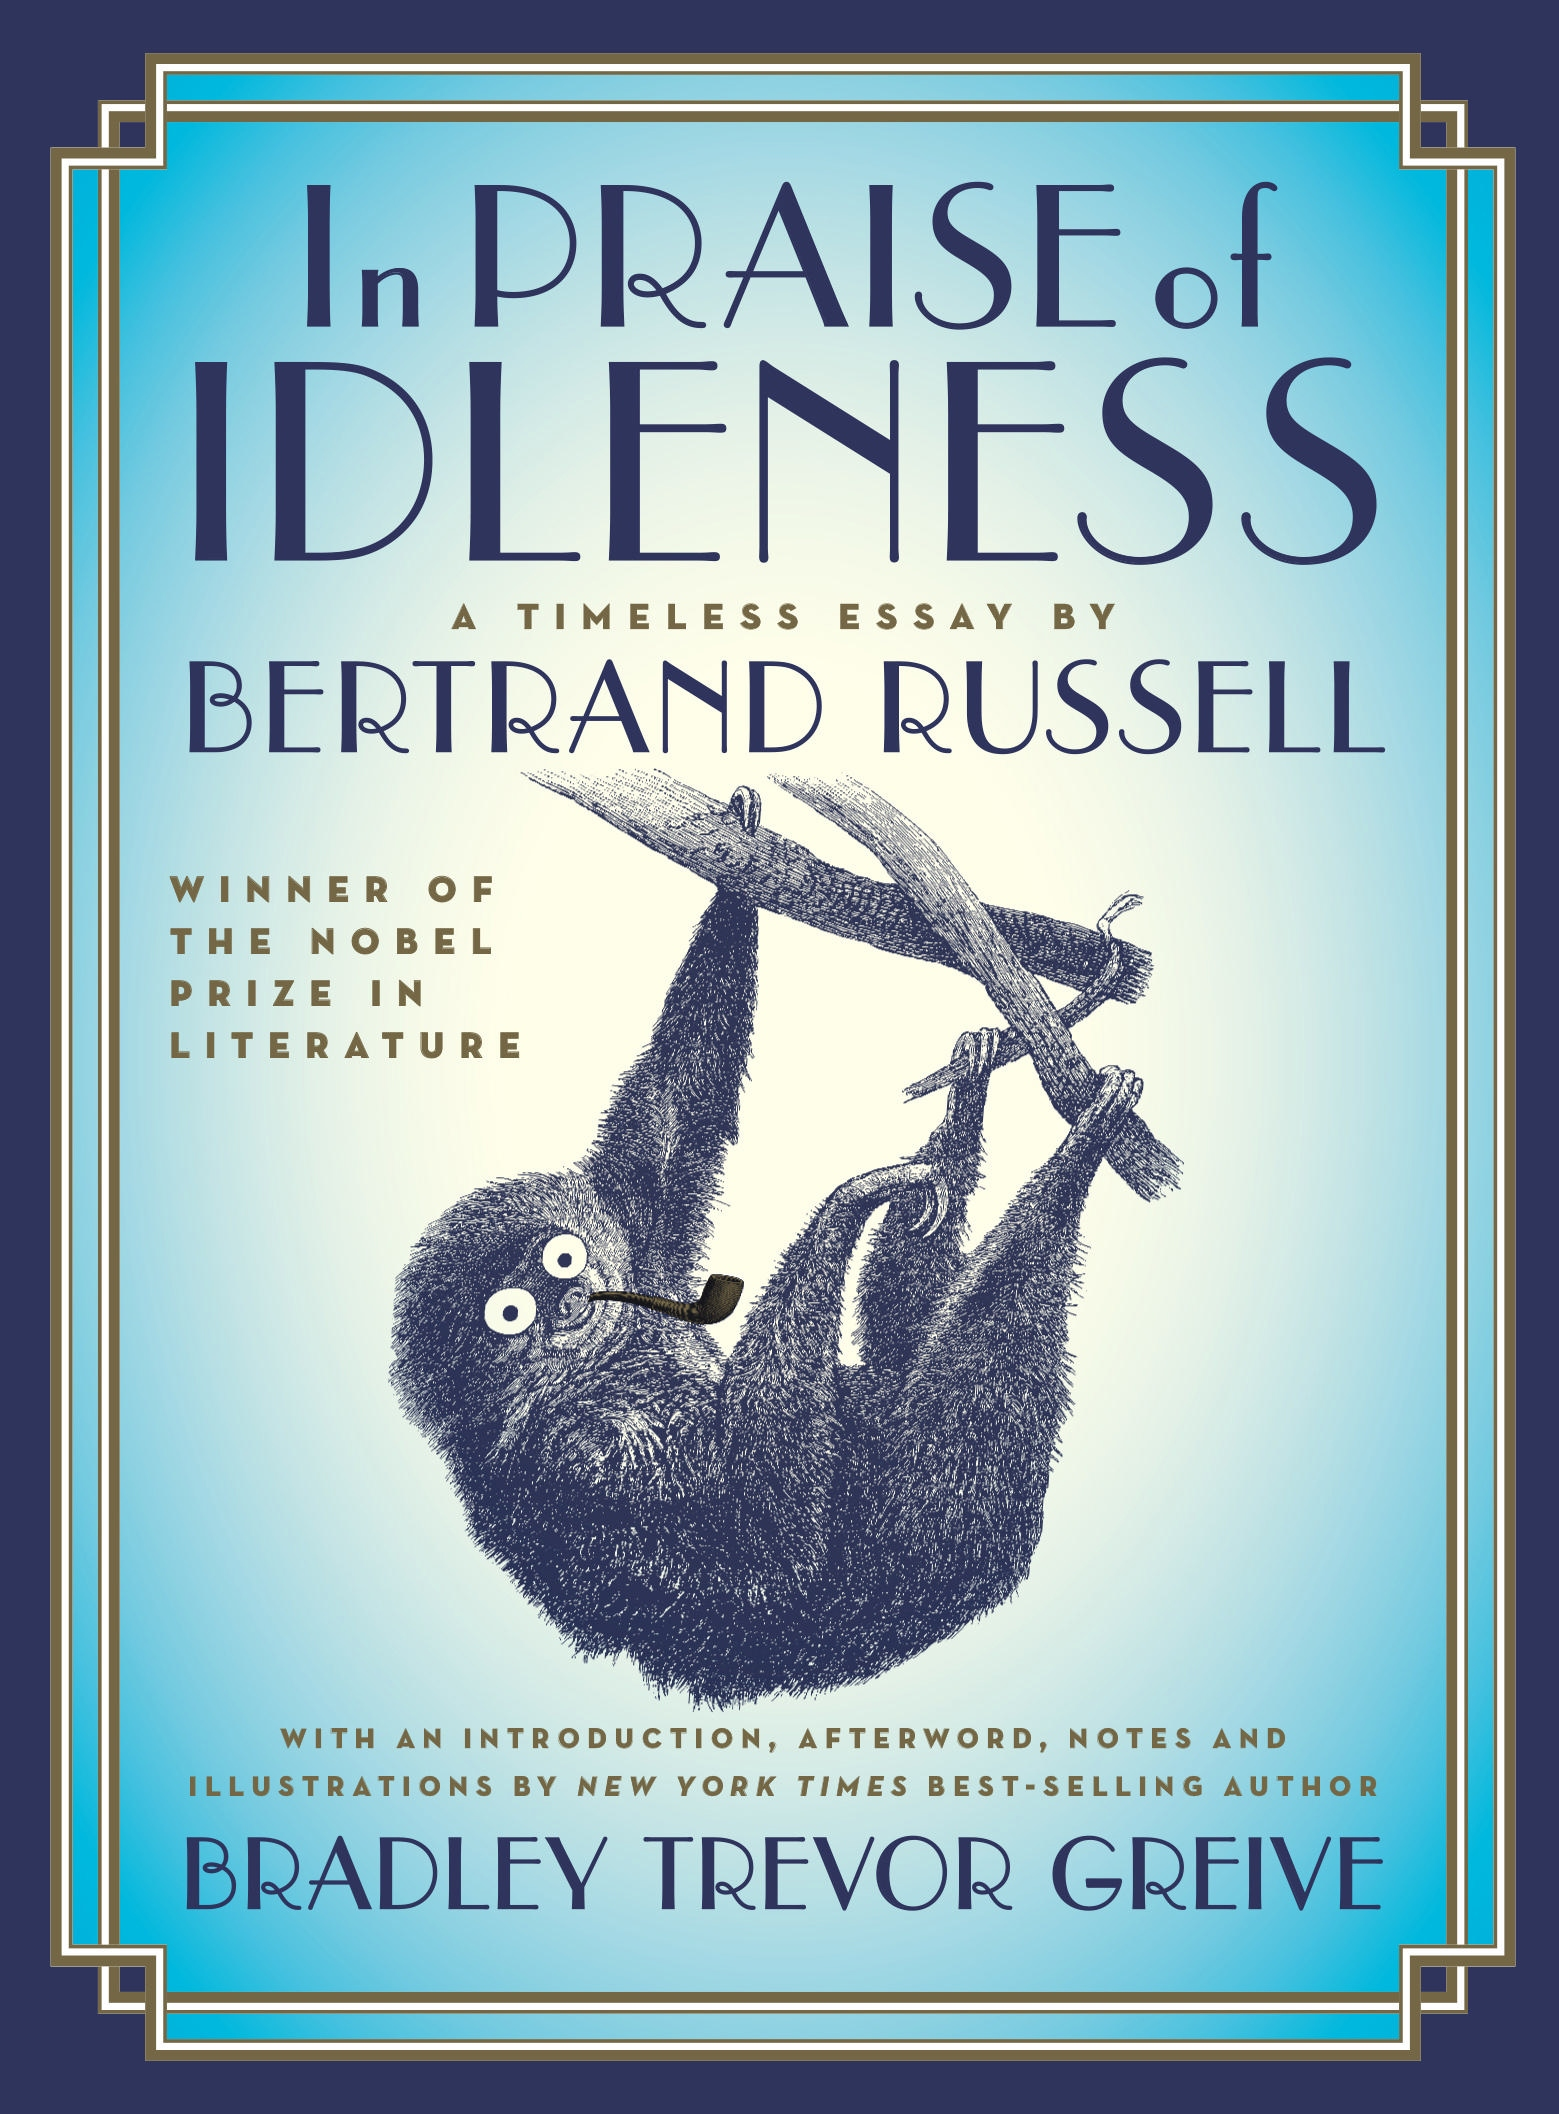 In Praise of IdlenessA Timeless Essay